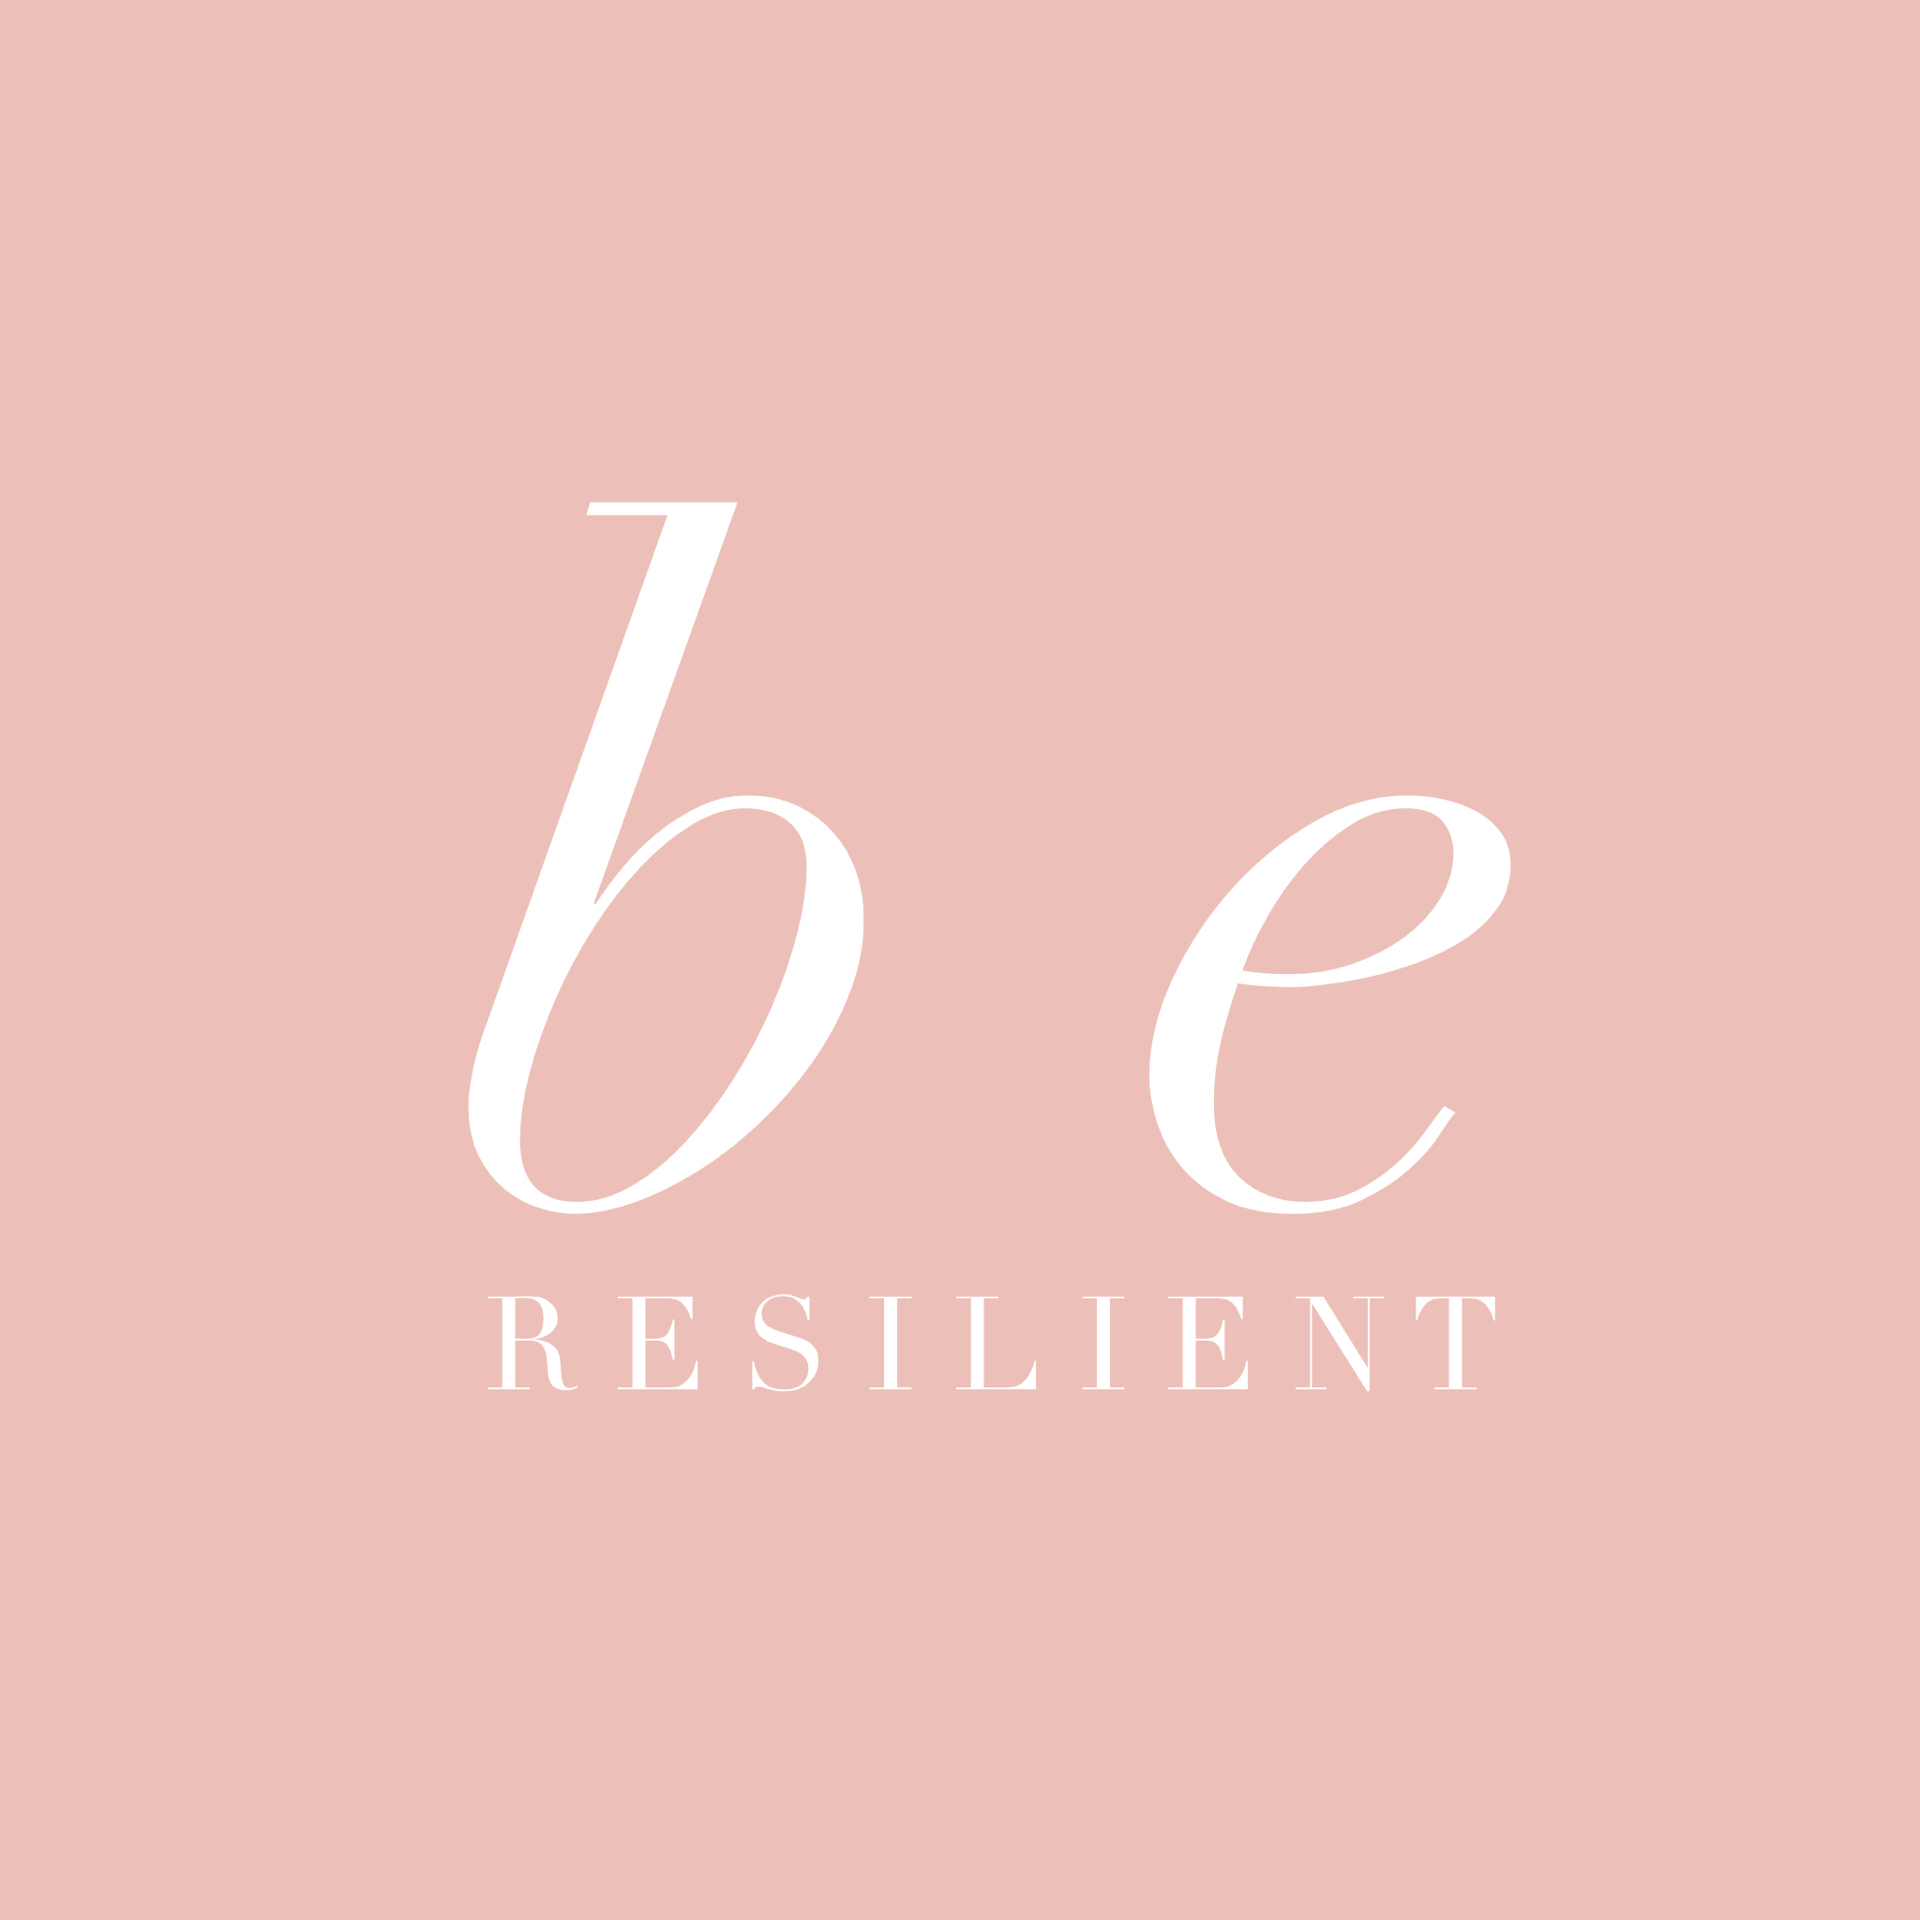 Tattoo Quotes About Resilience: Www.lifestylesjourney.com